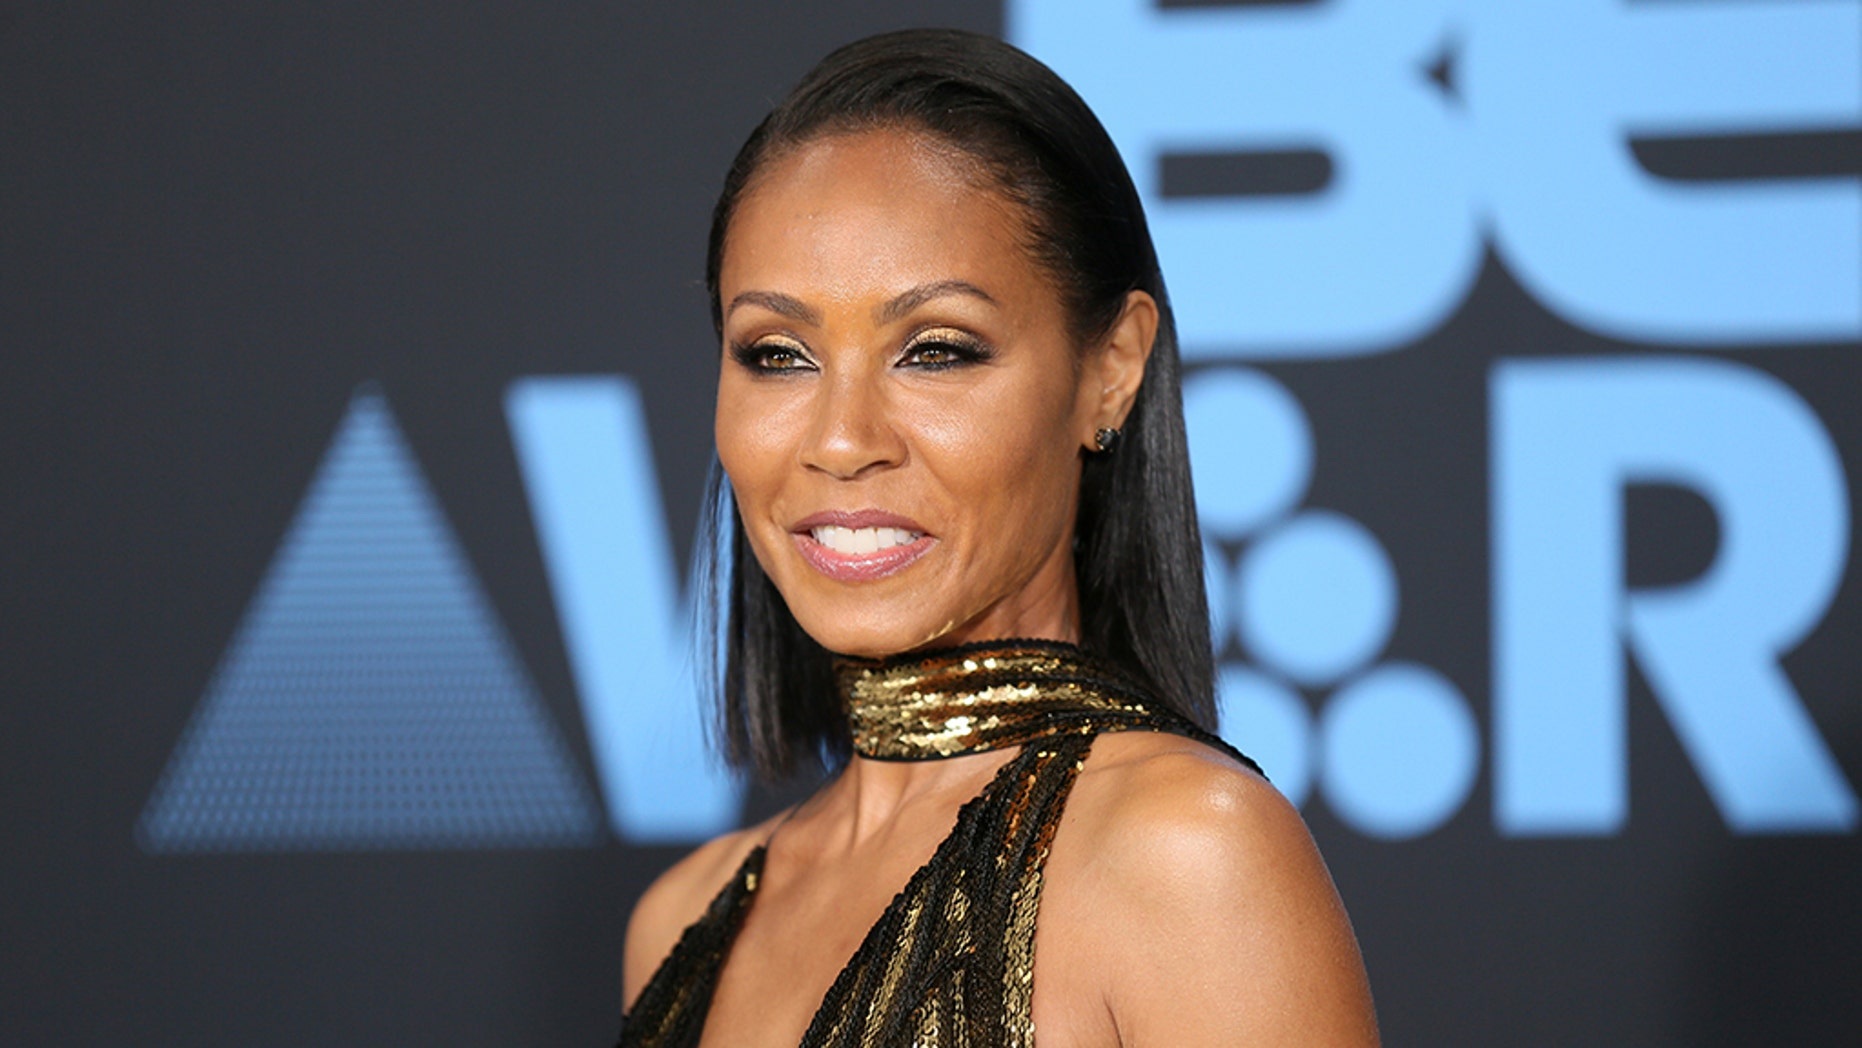 Jada Pinkett-Smith, her mother Adrienne Banfield-Jones and her daughter Willow Smith all showed off their physiques in a workout selfie.